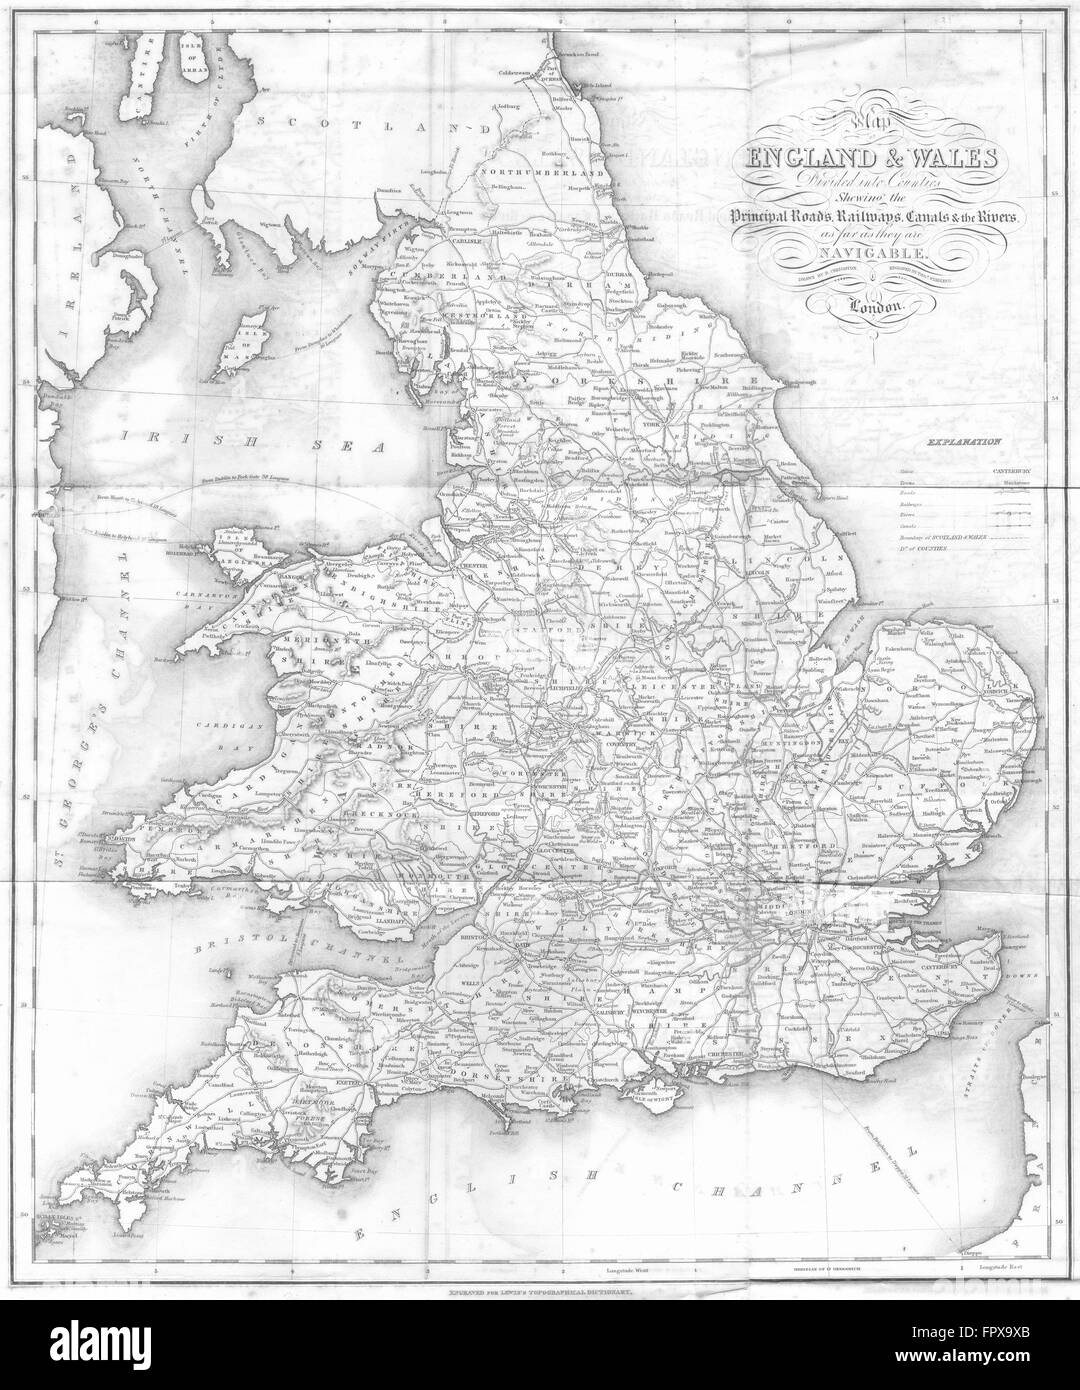 Map Of England Rivers And Canals.England Wales Roads Rail Canals Rivers Lewis 1831 Antique Map